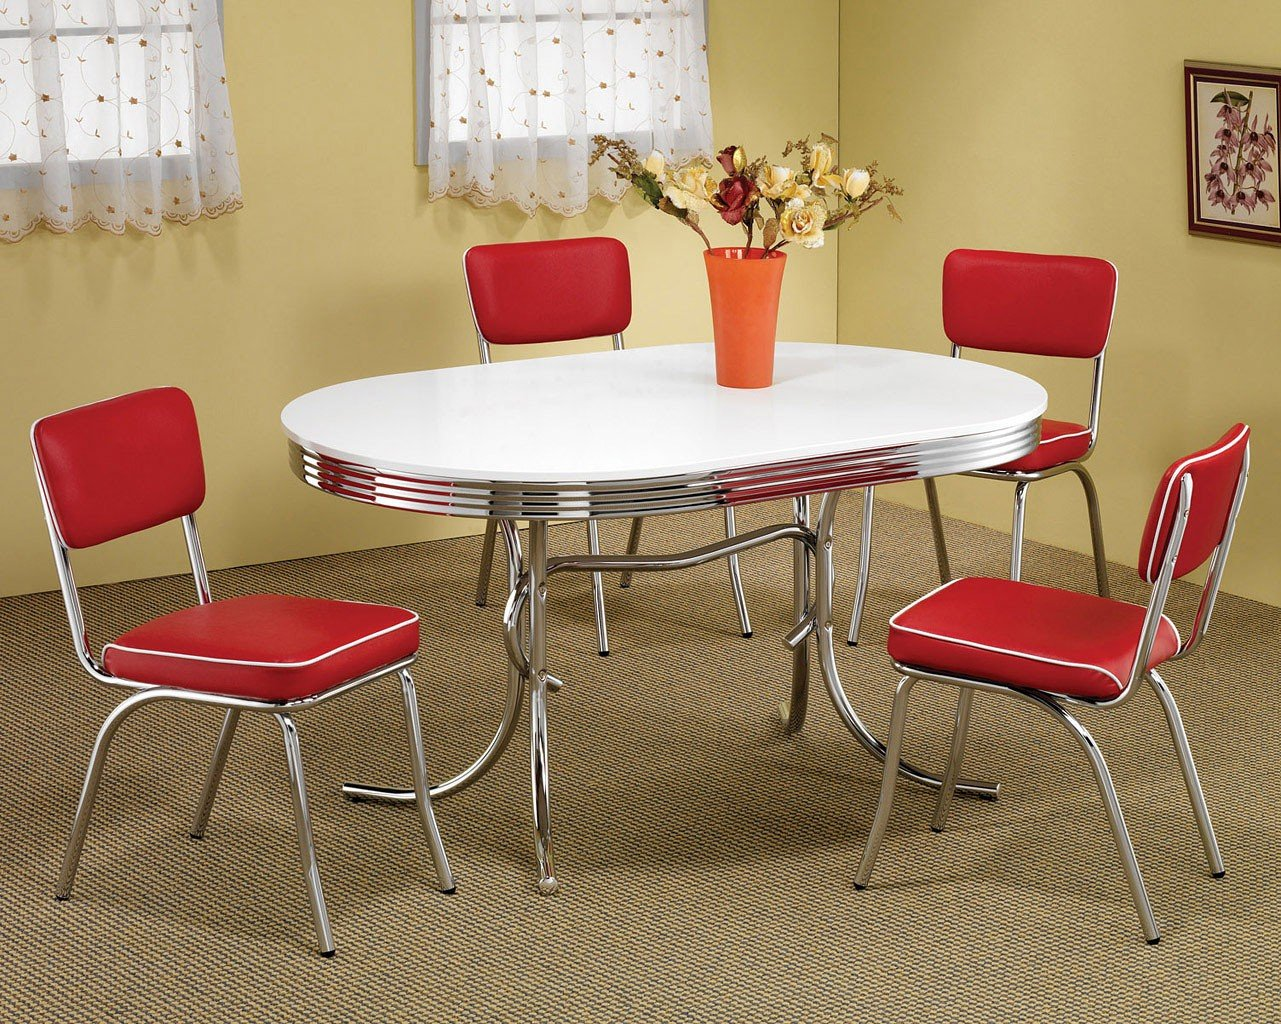 Retro Dining Room Set W/ Red Chairs Coaster Furniture | Furniture Cart